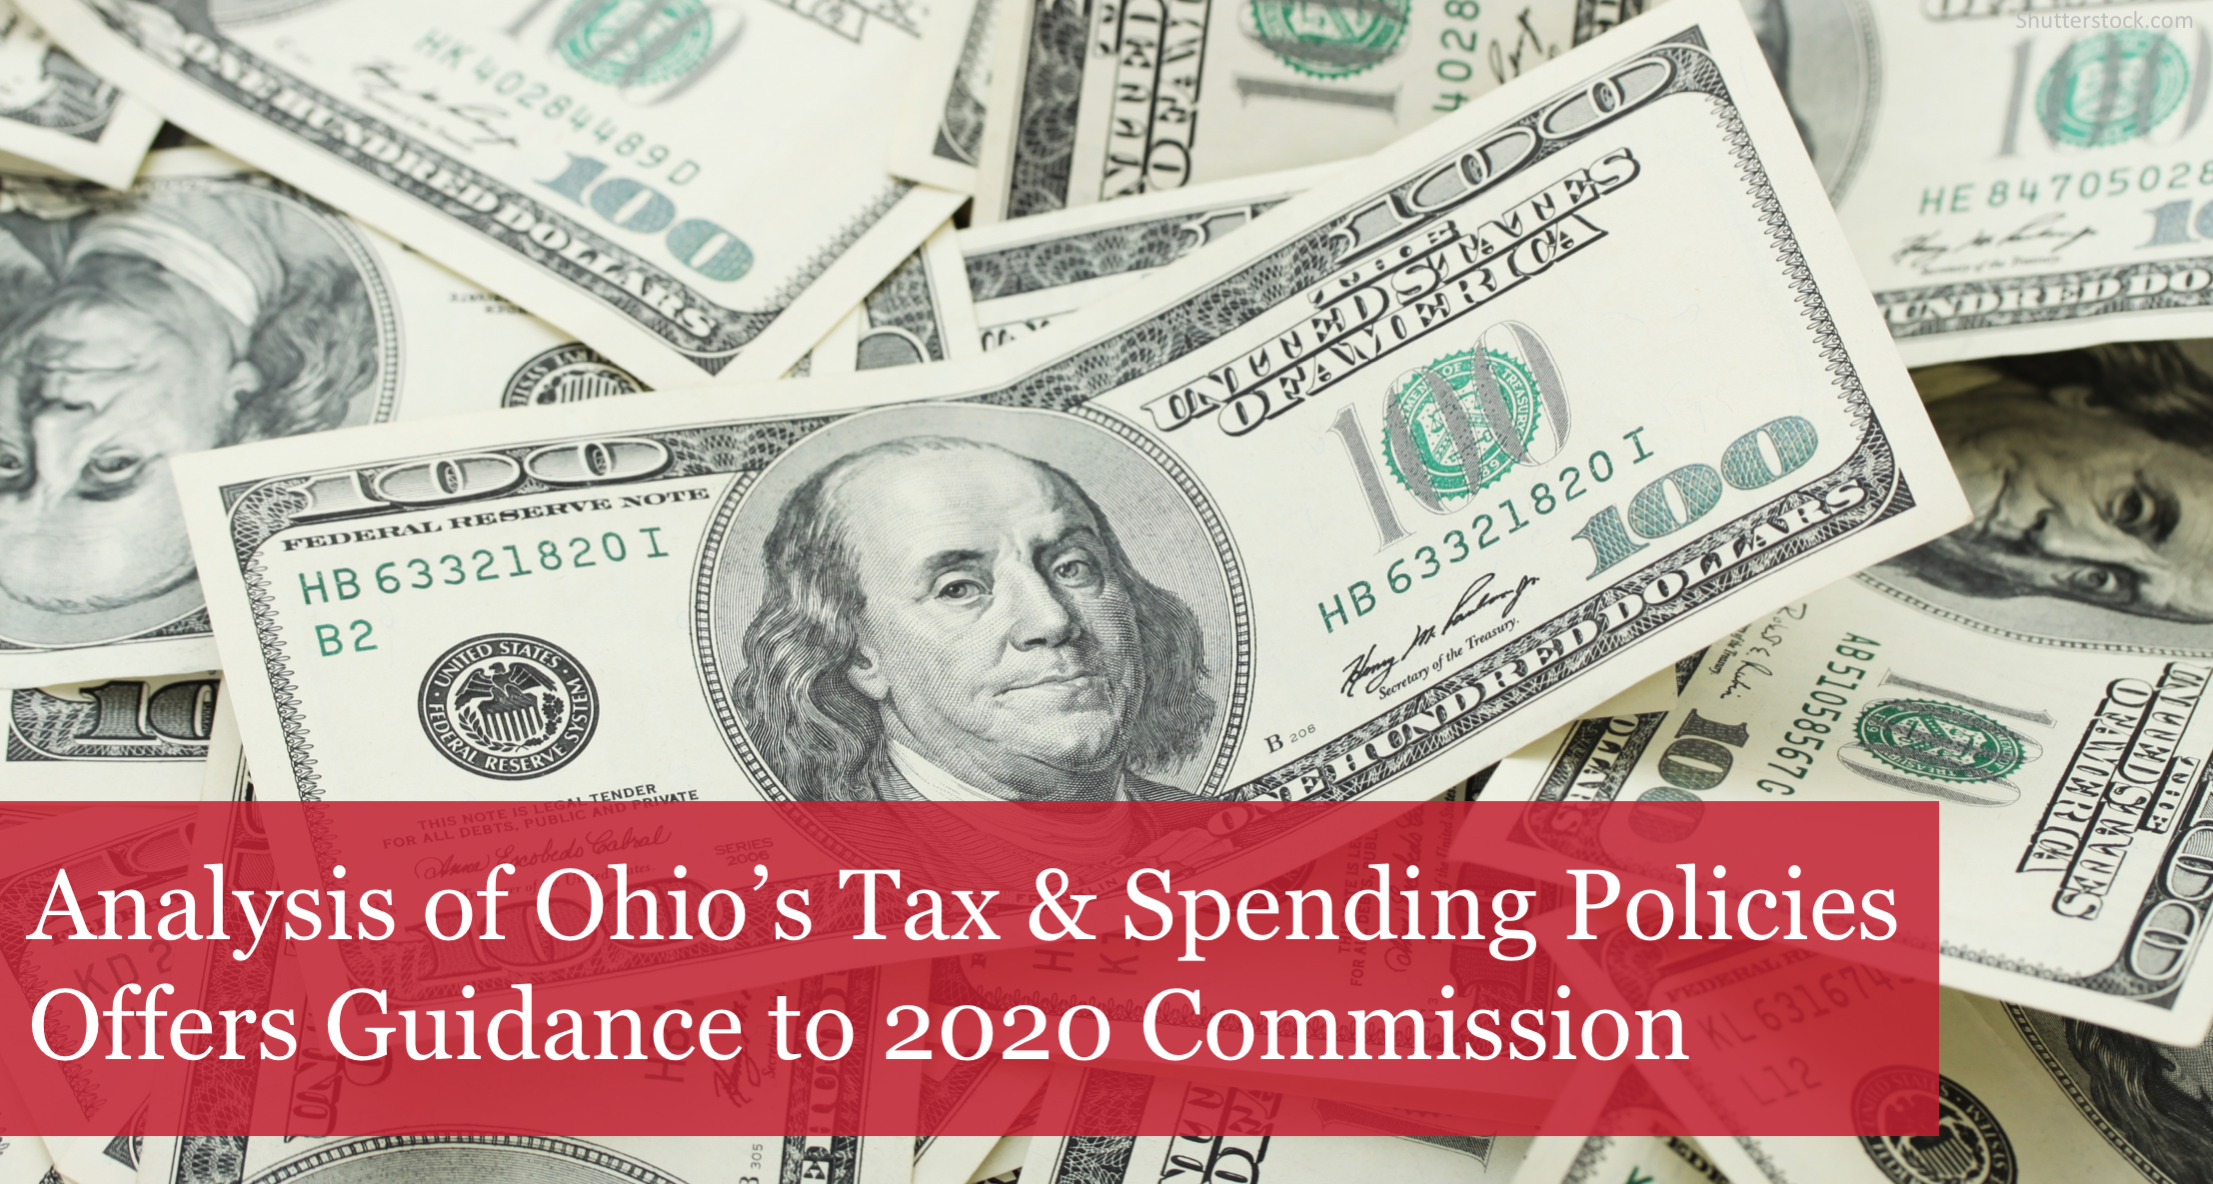 New Buckeye Analysis of Ohio's Tax & Spending Policies Offers Guidance to 2020 Commission